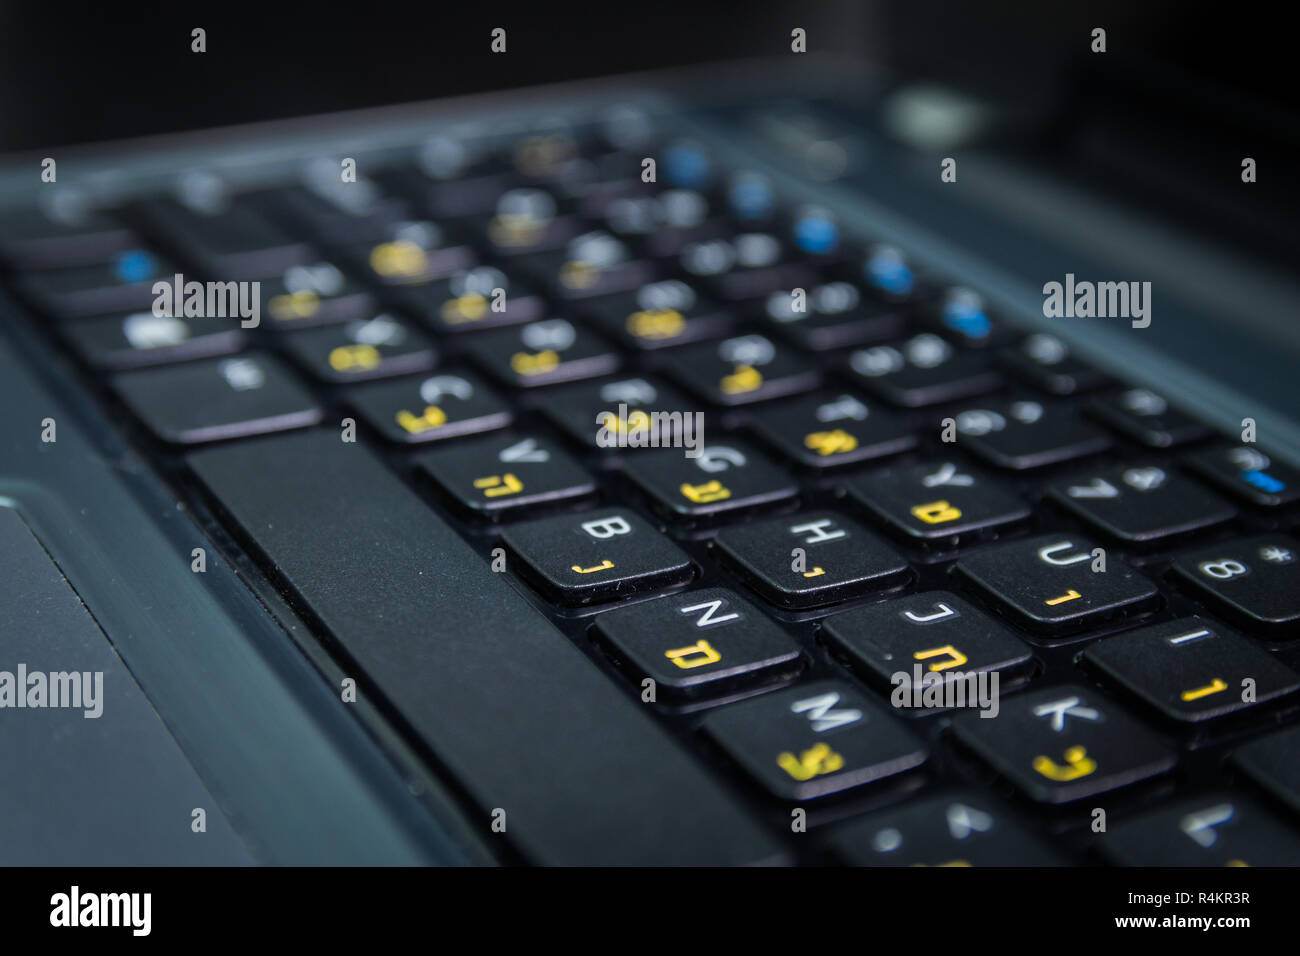 Keyboard with letters in Hebrew and English - Stock Image